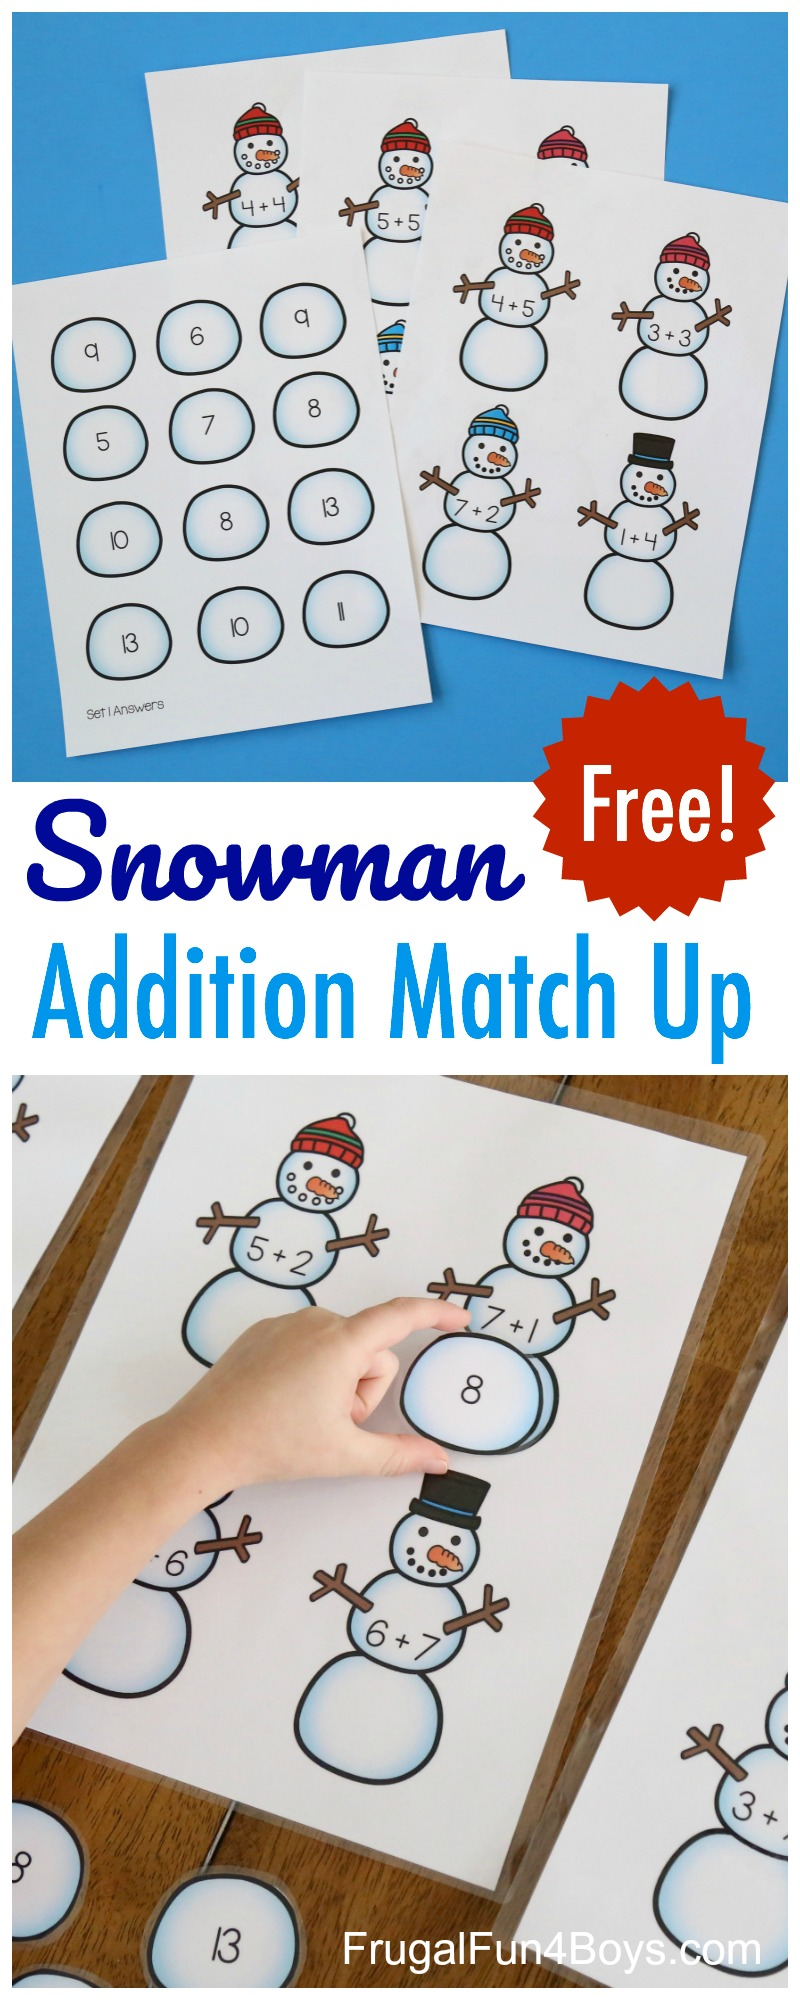 Snowman Addition Match-Up Printable Math Game